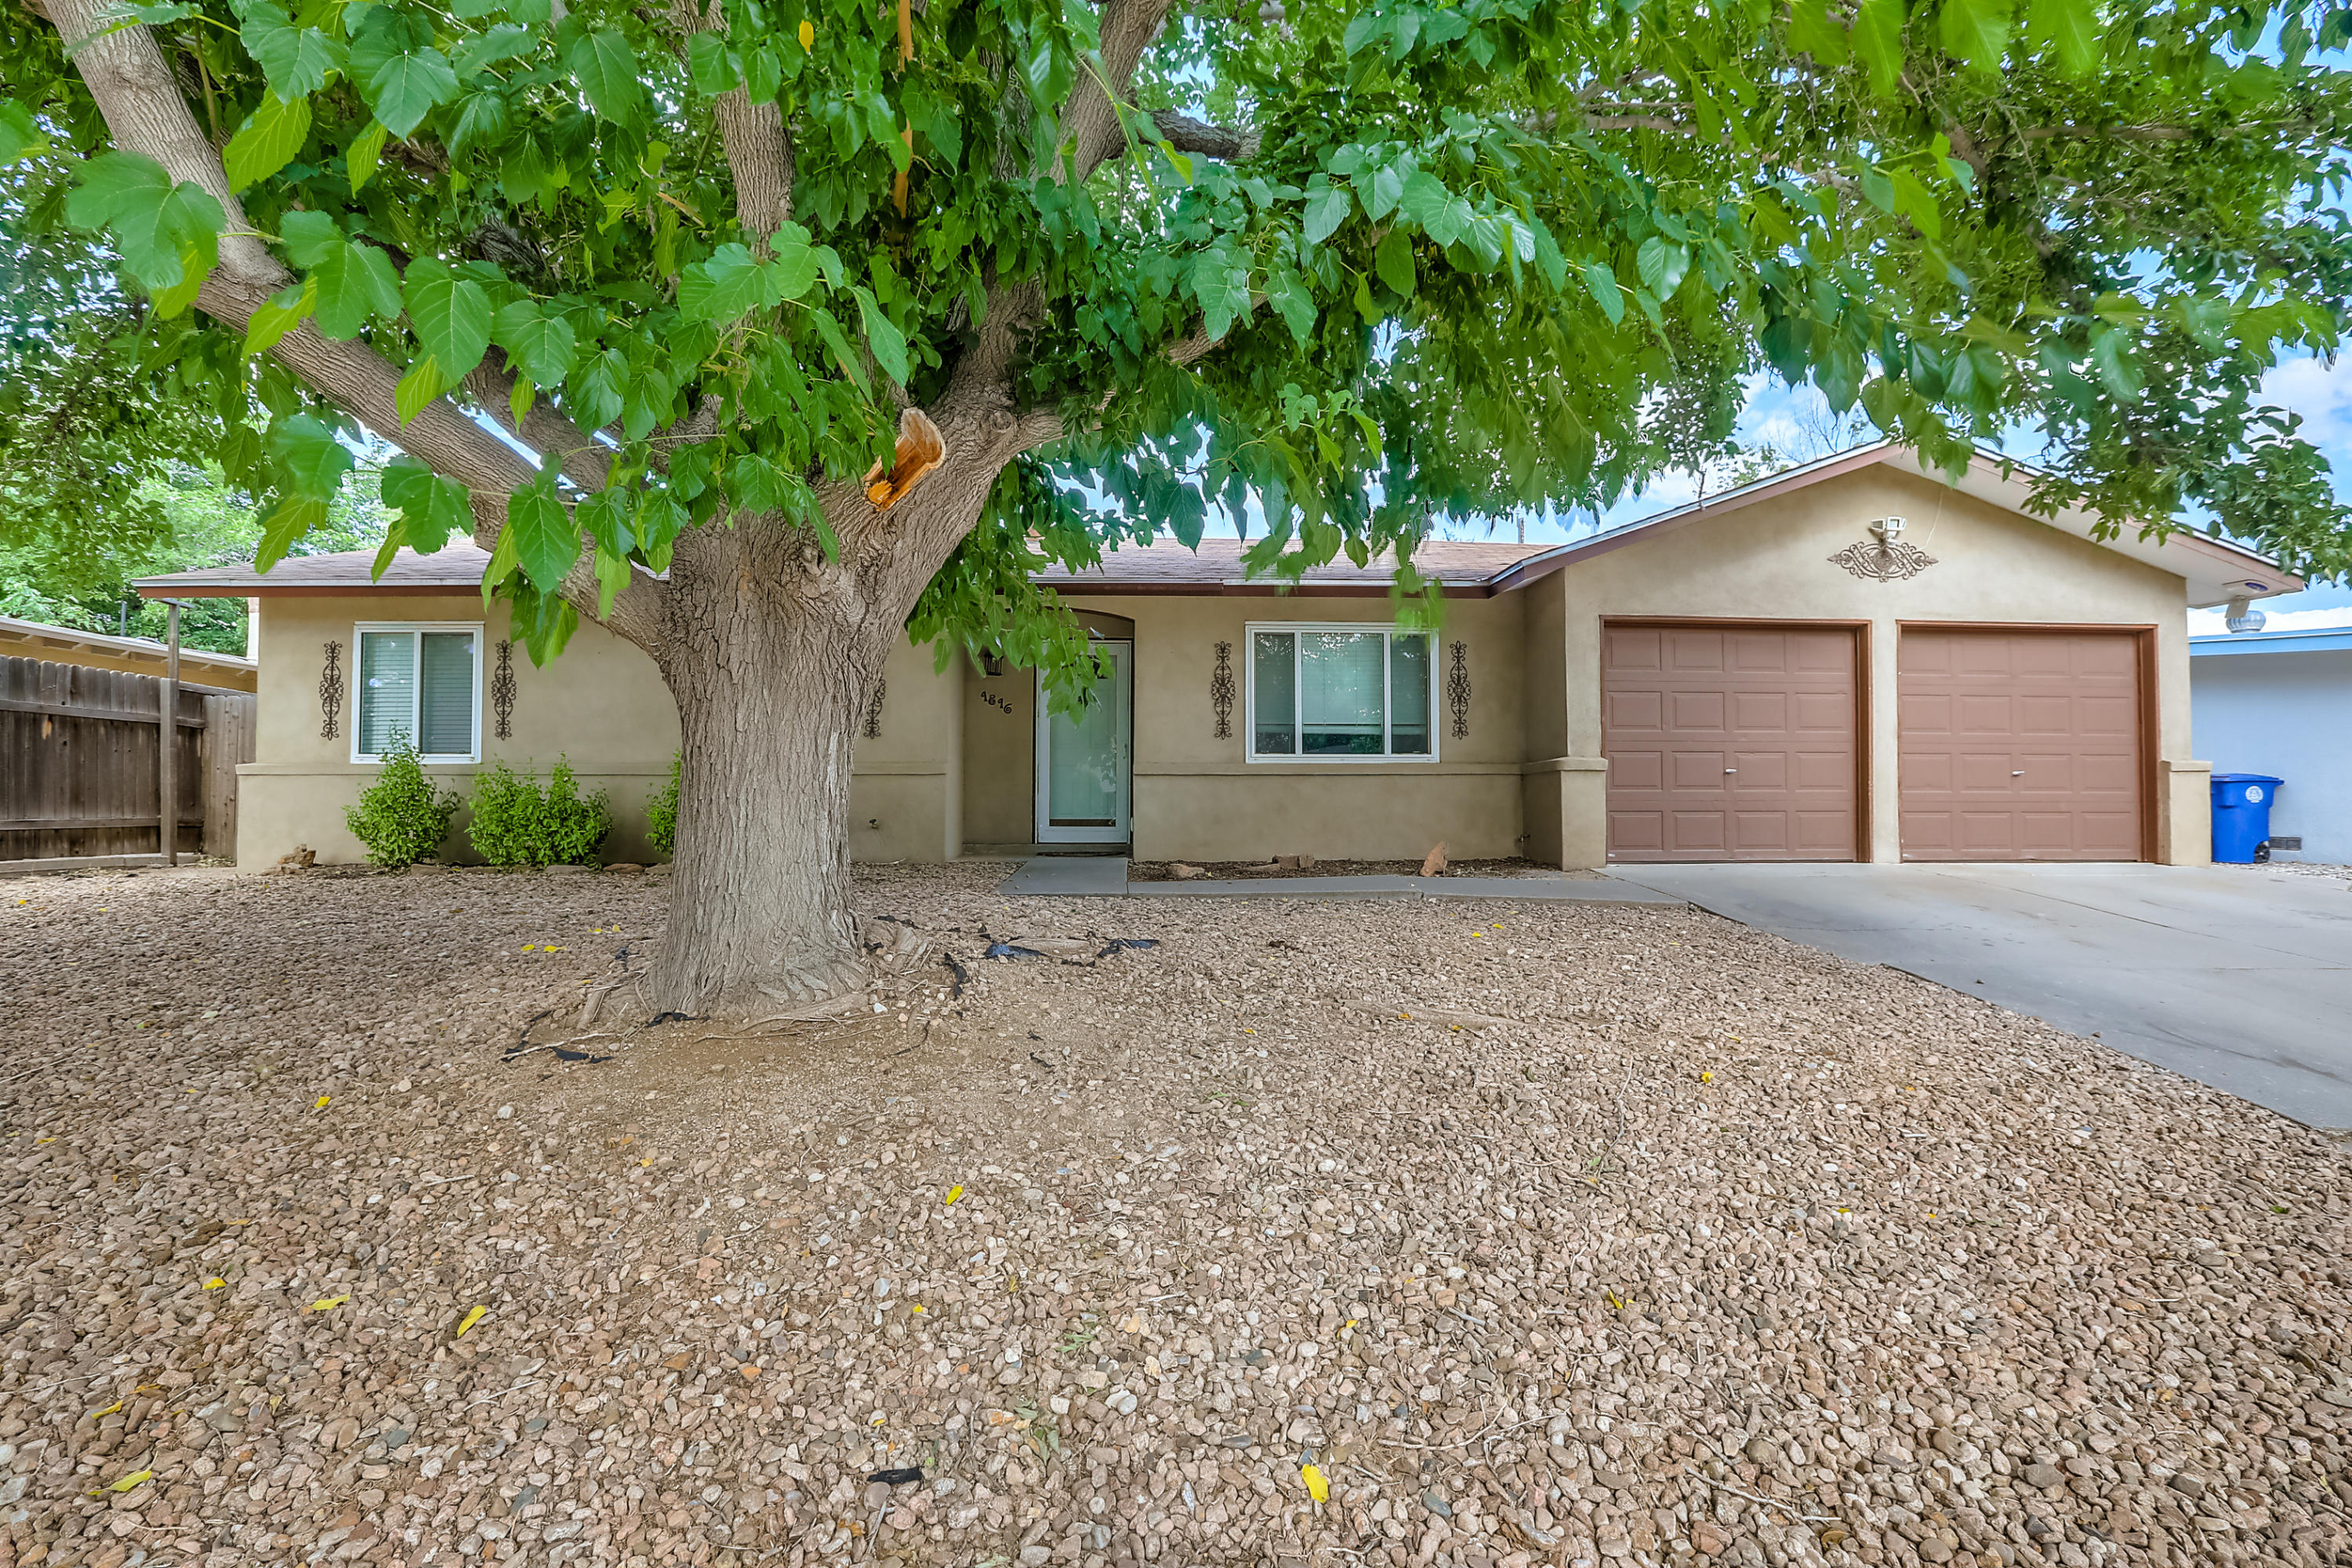 Beautiful, well maintained home with updated Kitchen with Maple Cabinets and stainless steel appliances.Bathrooms have been updated,Great backyard with sprinkler system, pond area.Perfect for entertaining inside and out.You won't be disappointed!